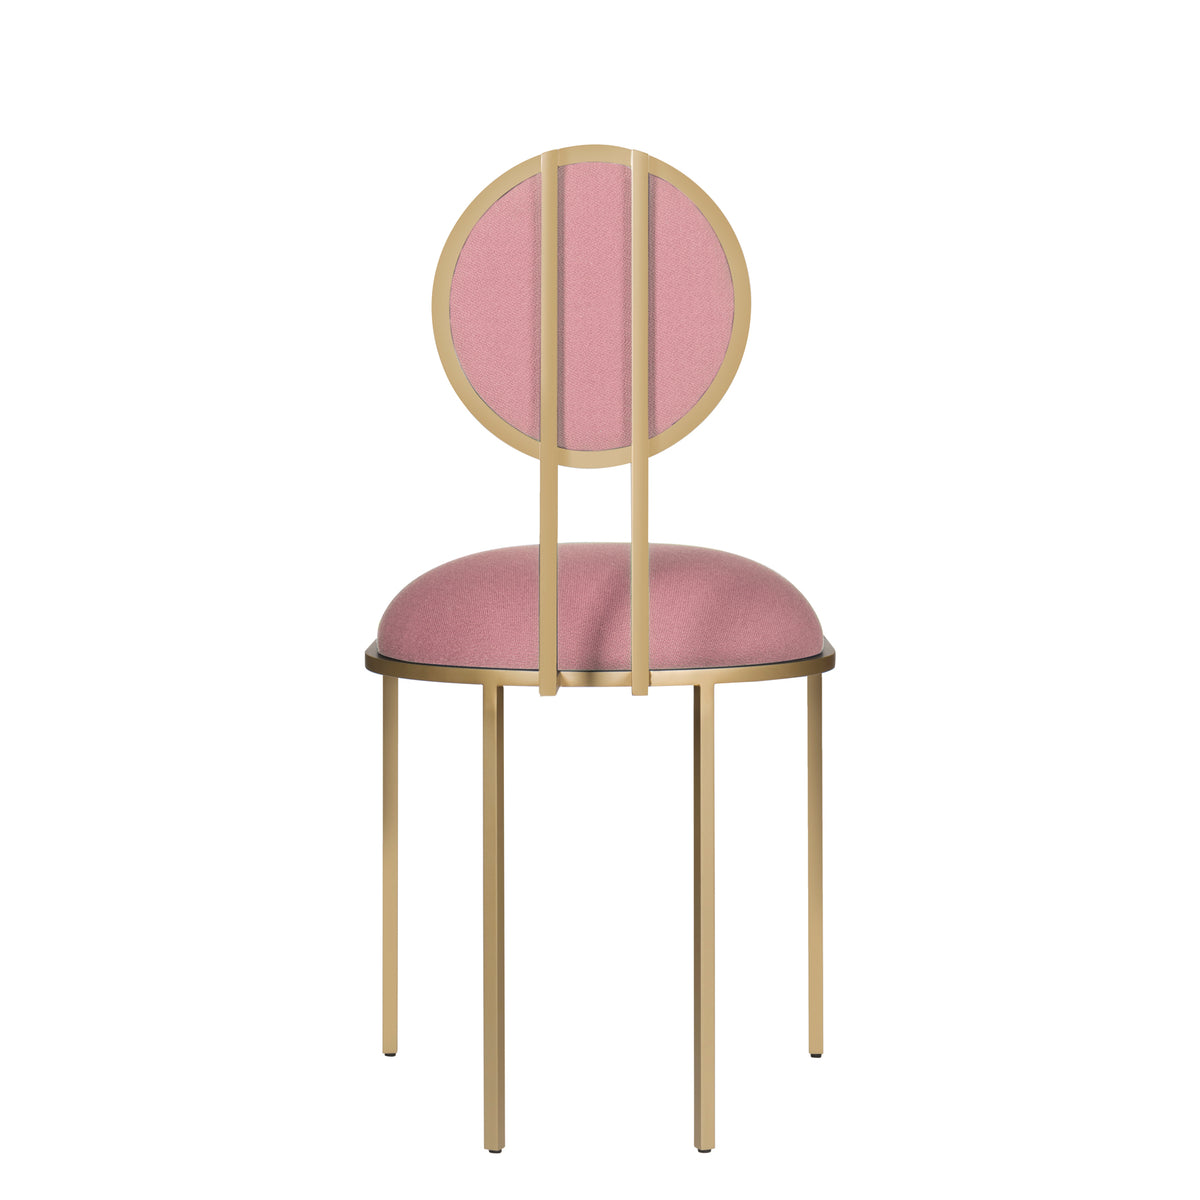 ORBIT DINING CHAIR - PINK